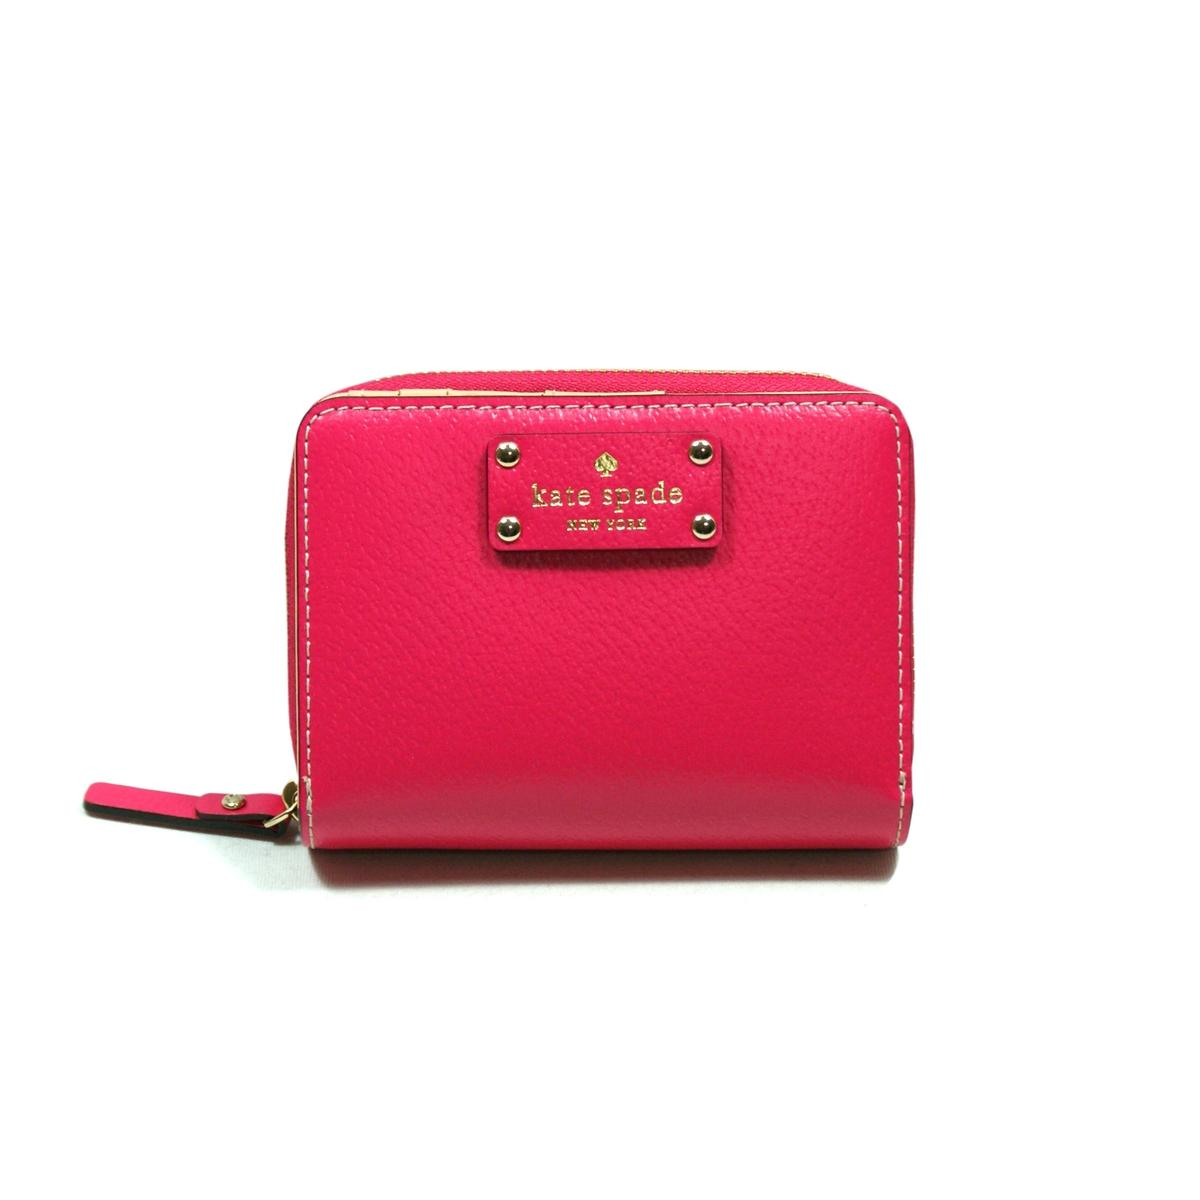 Kate Spade Cara Wellesley Small Wallet Deep Pink Wlru1745